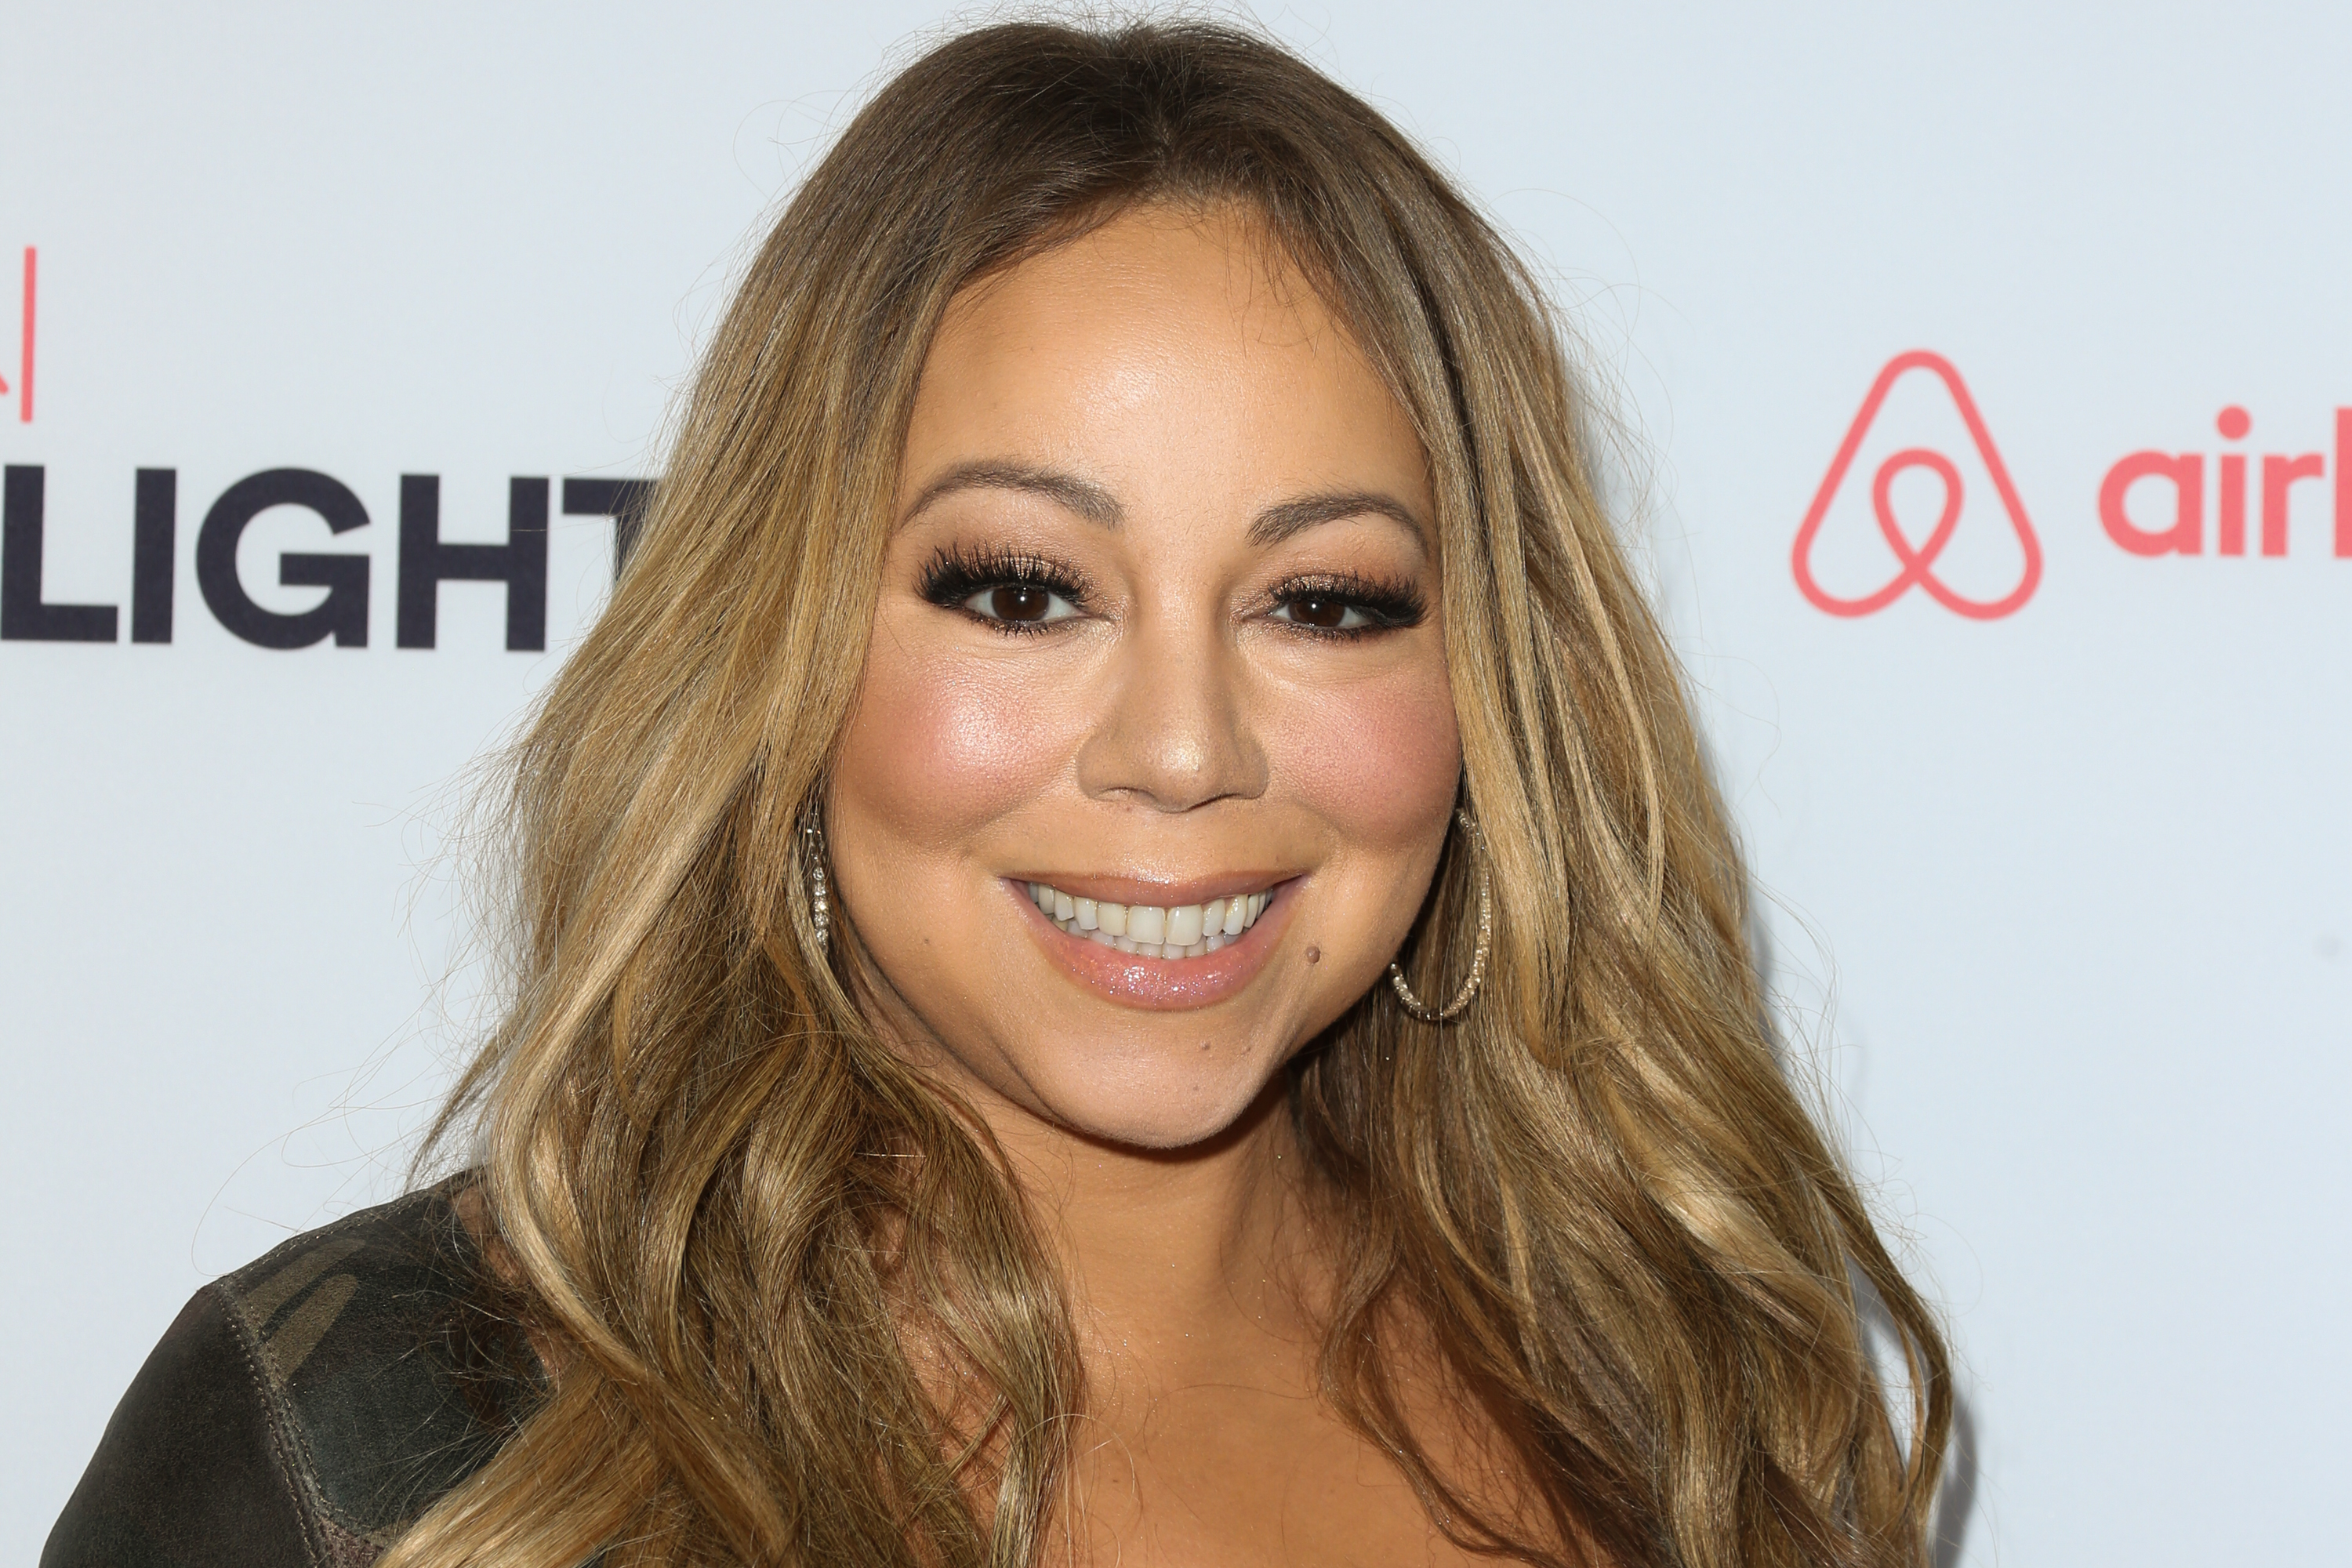 The sad reason why Mariah Carey only likes to be photographed from her right side